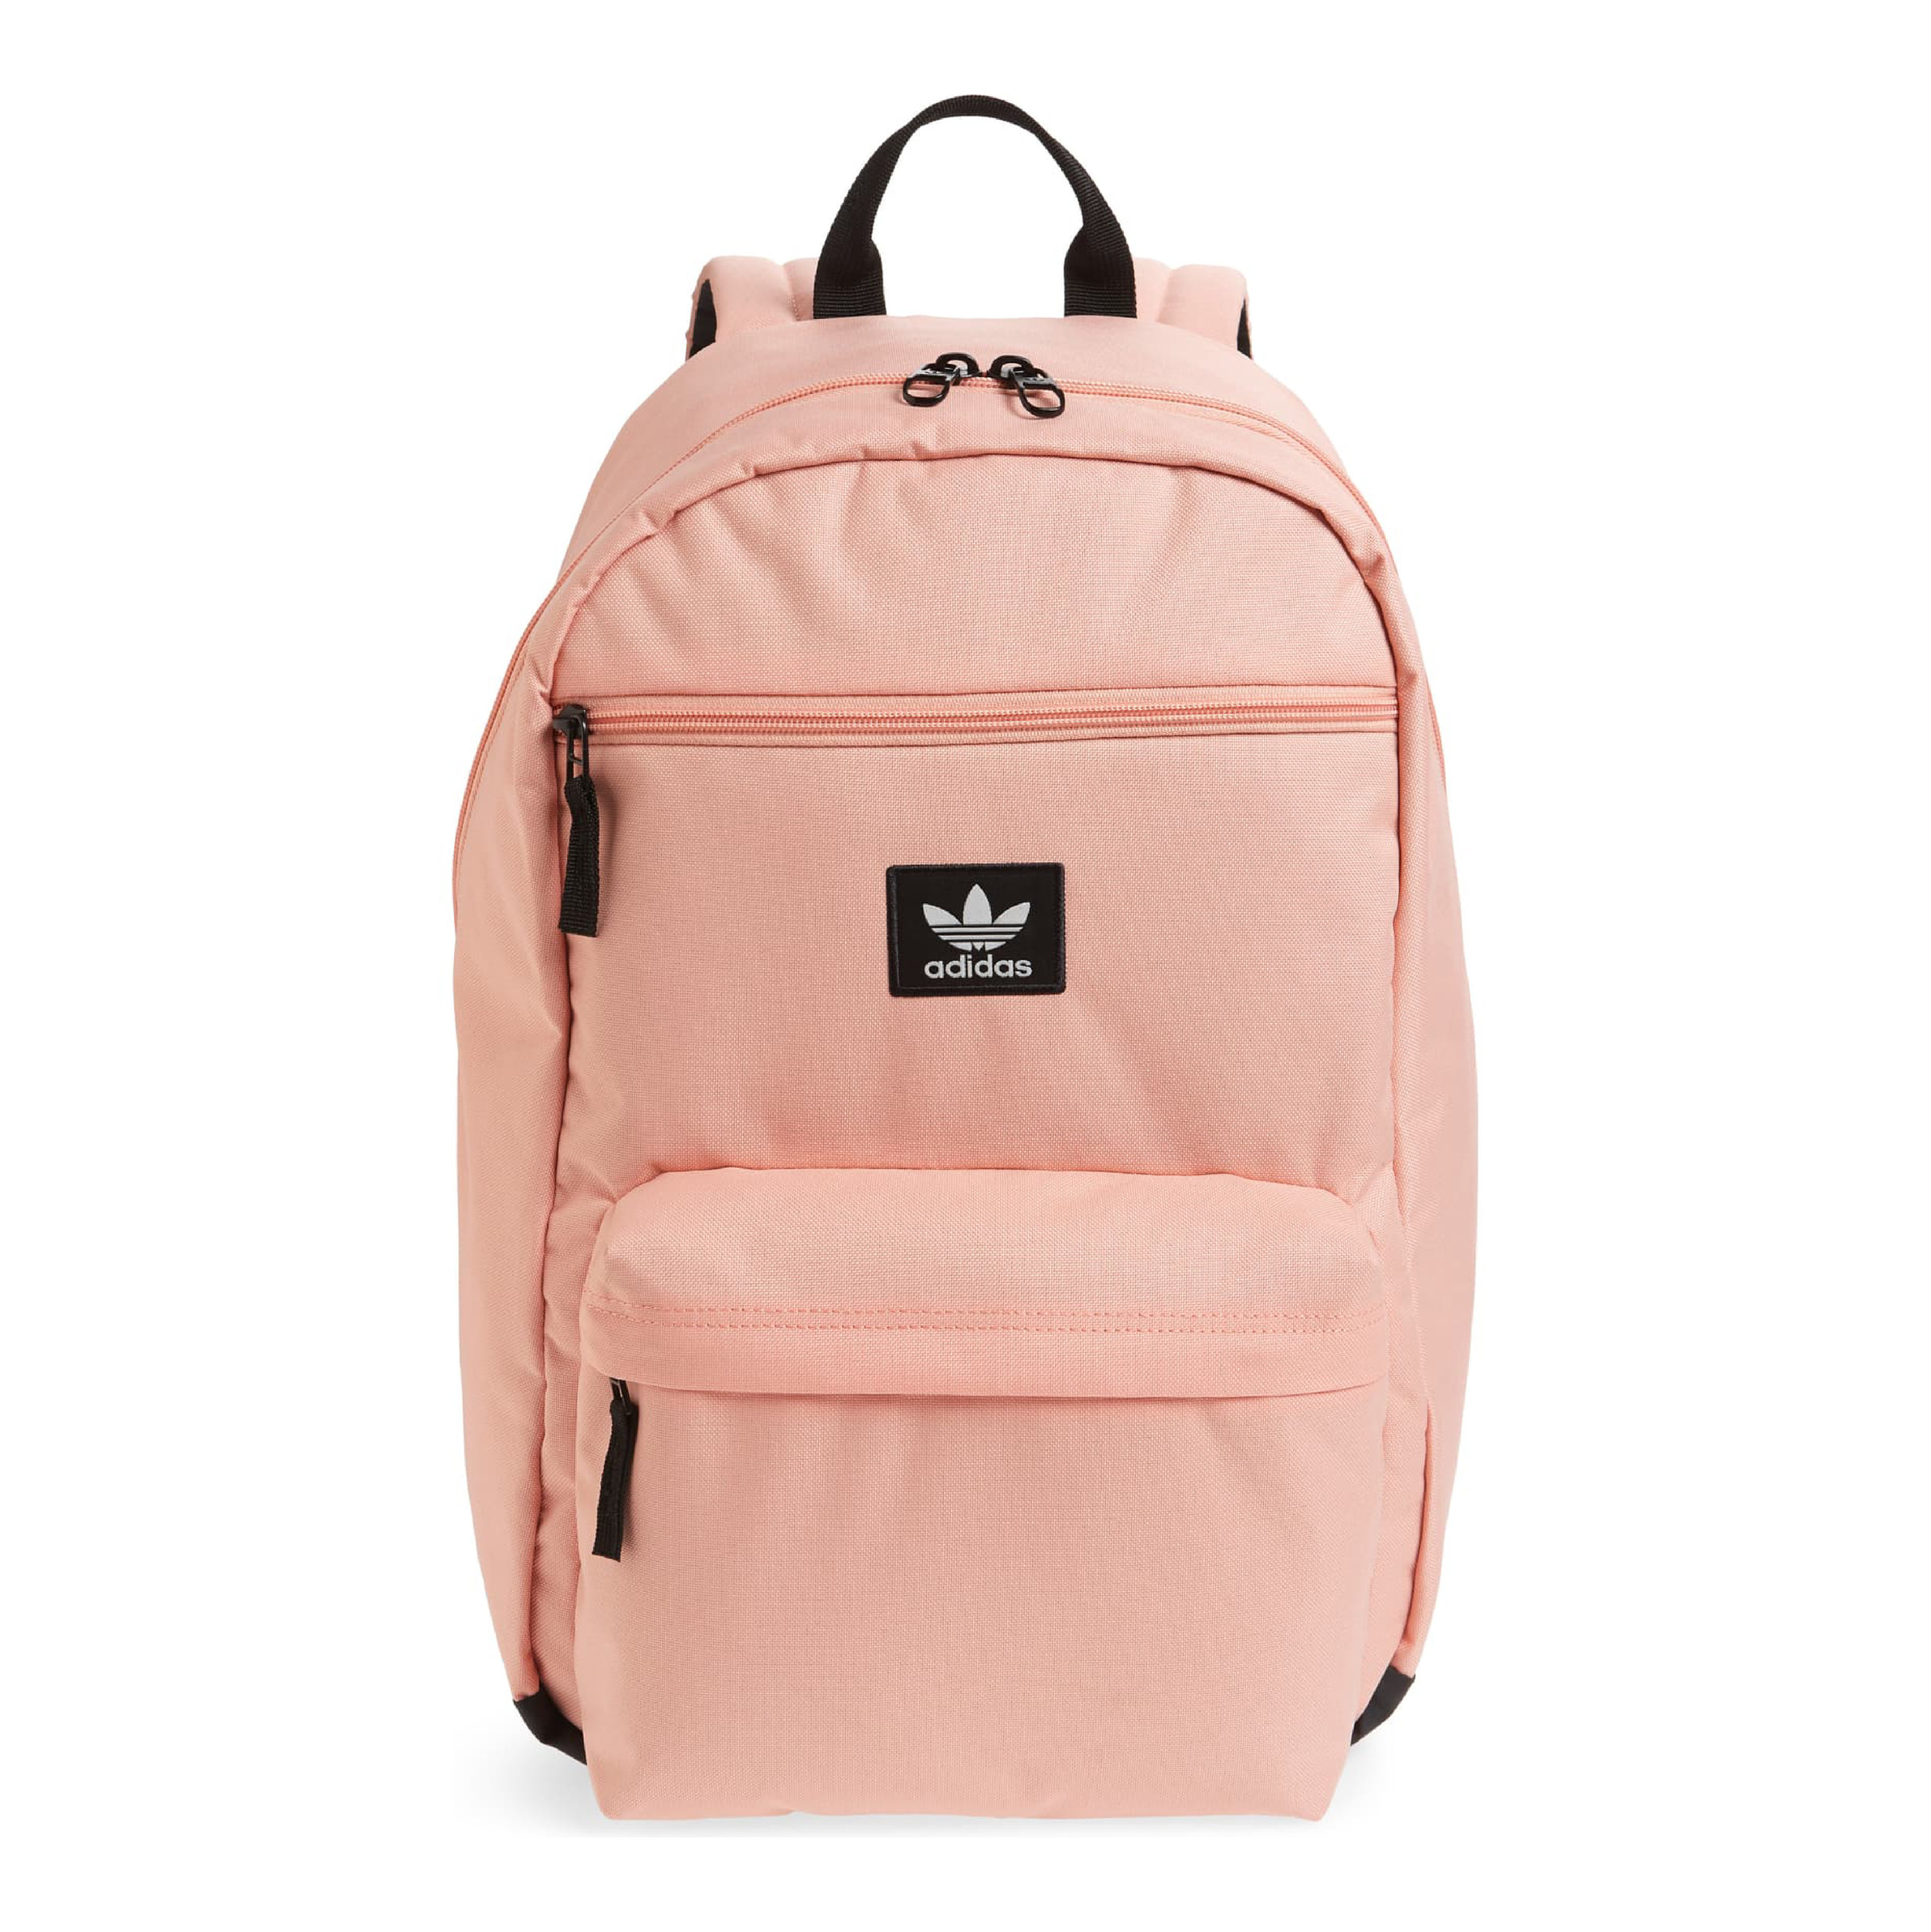 Adidas - How adorable is this pink Adidas backpack!? We might need one for us too.